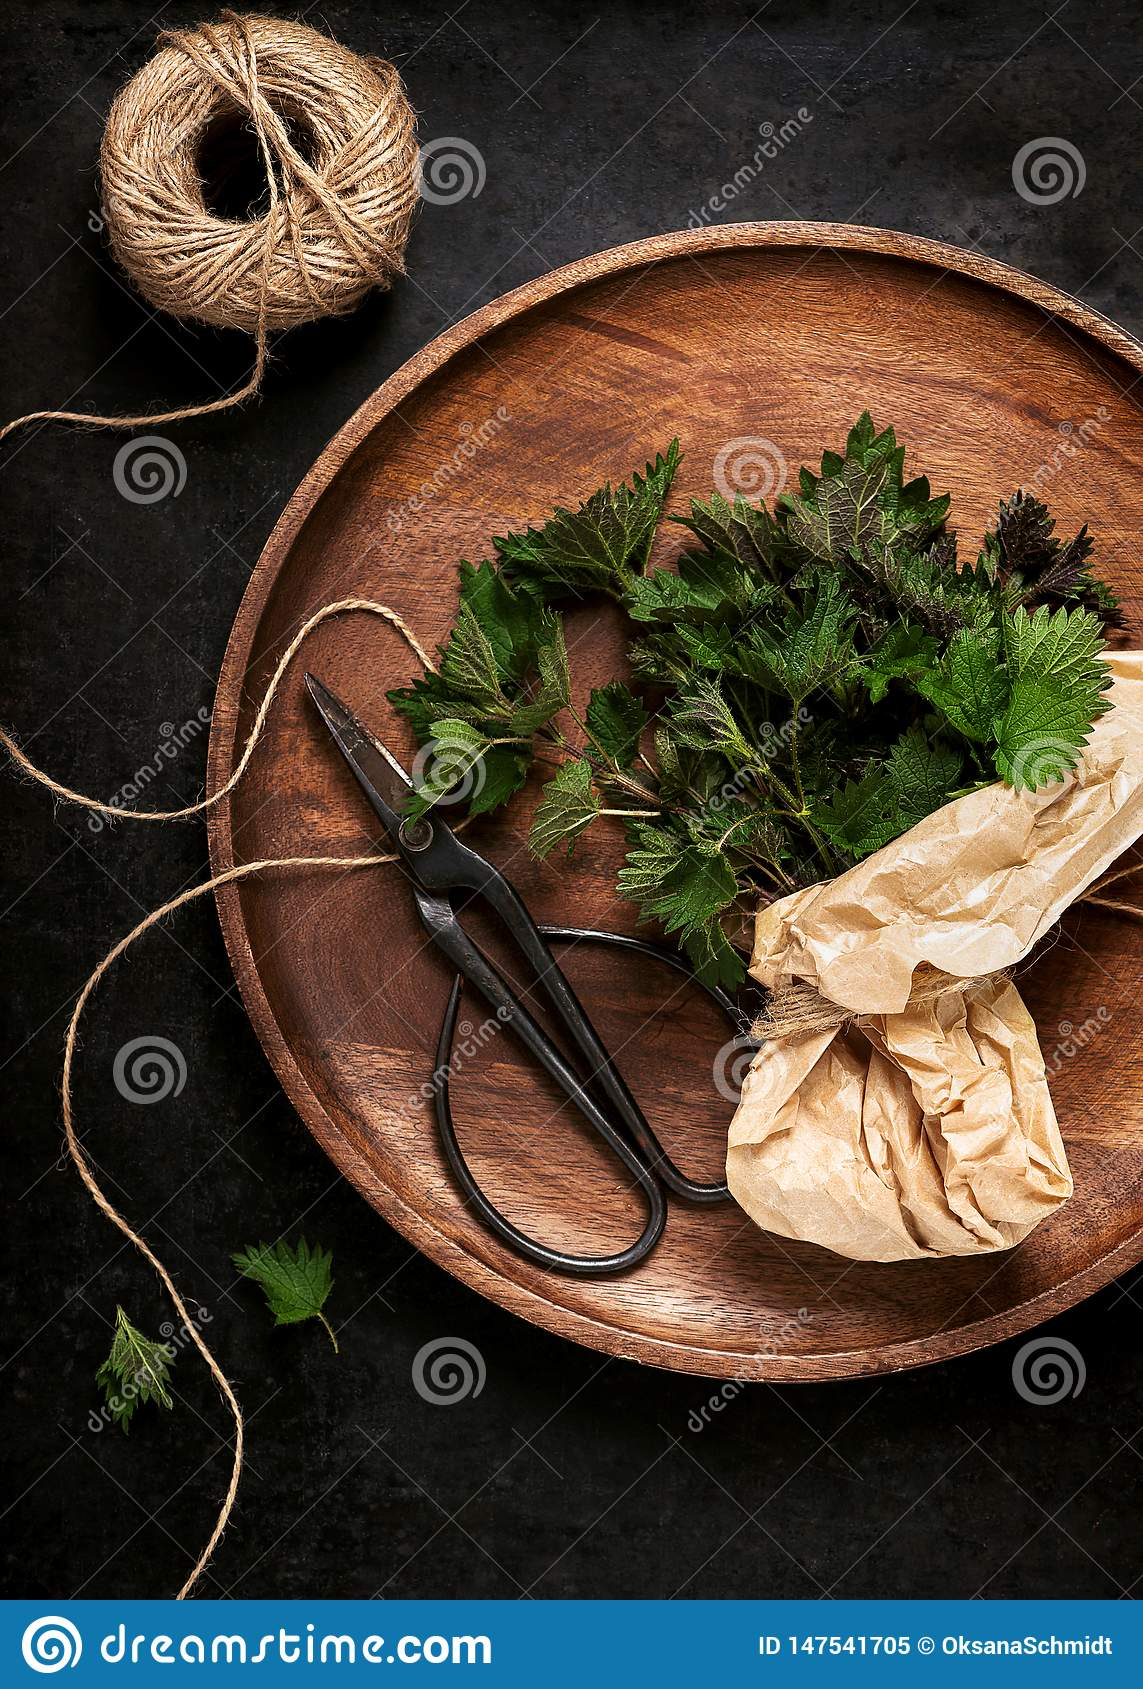 Fresh young stinging nettle leaves on a wooden pate.